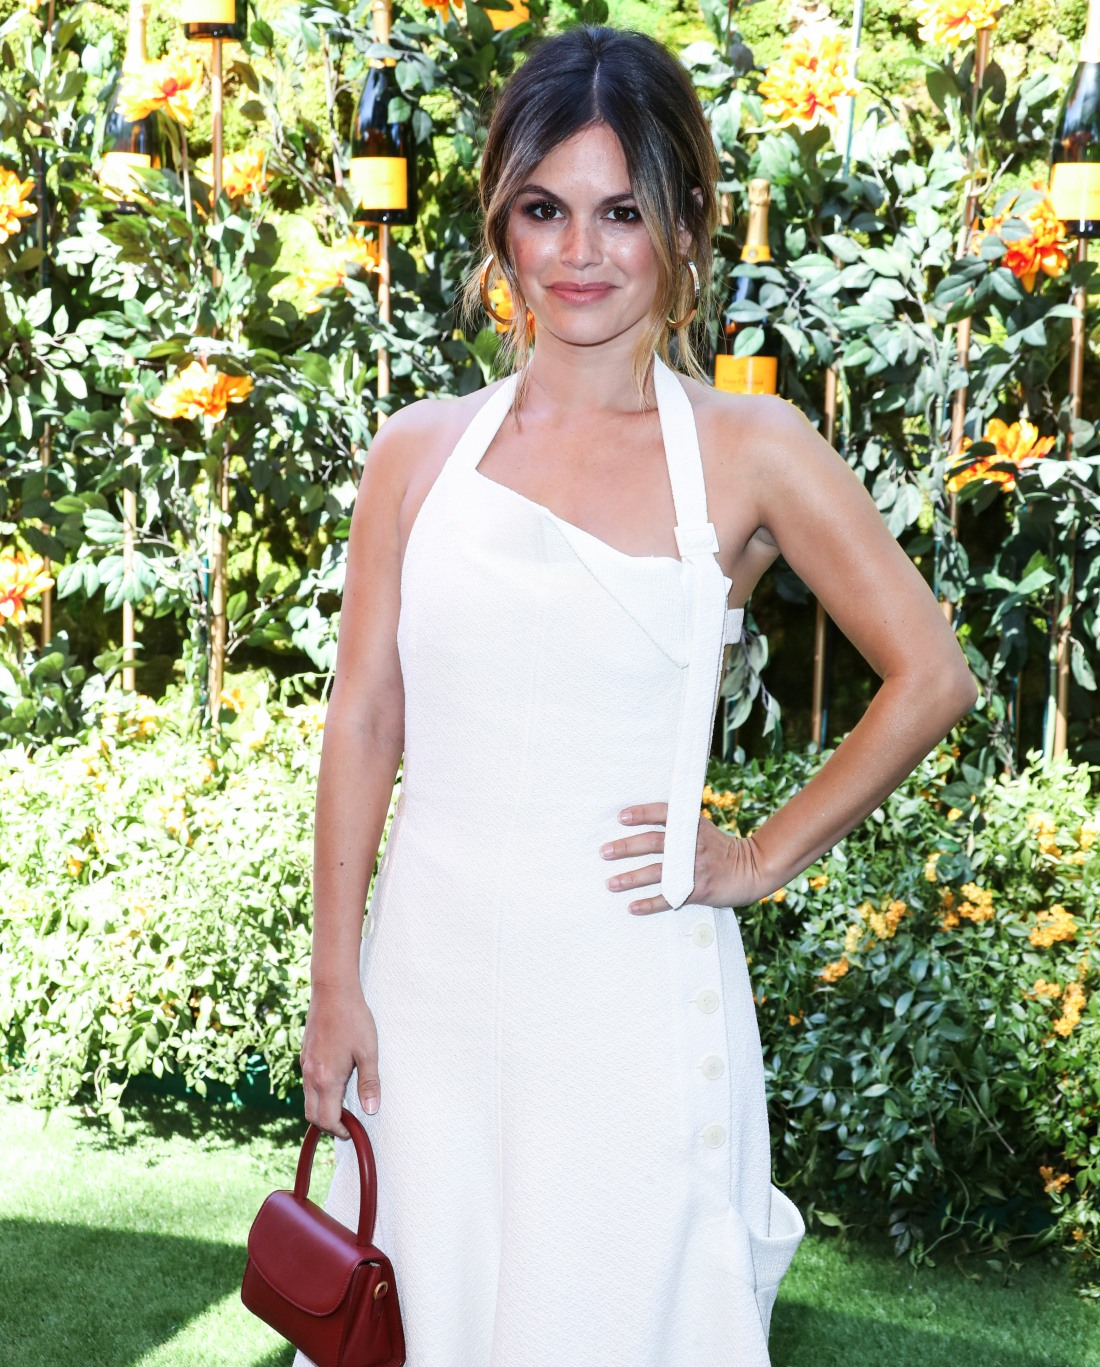 Actress Rachel Bilson wearing a Jacquemus dress arrives at the 10th Annual Veuve Clicquot Polo Classic Los Angeles held at Will Rogers State Historic Park on October 5, 2019 in Pacific Palisades, Los Angeles, California, United States.